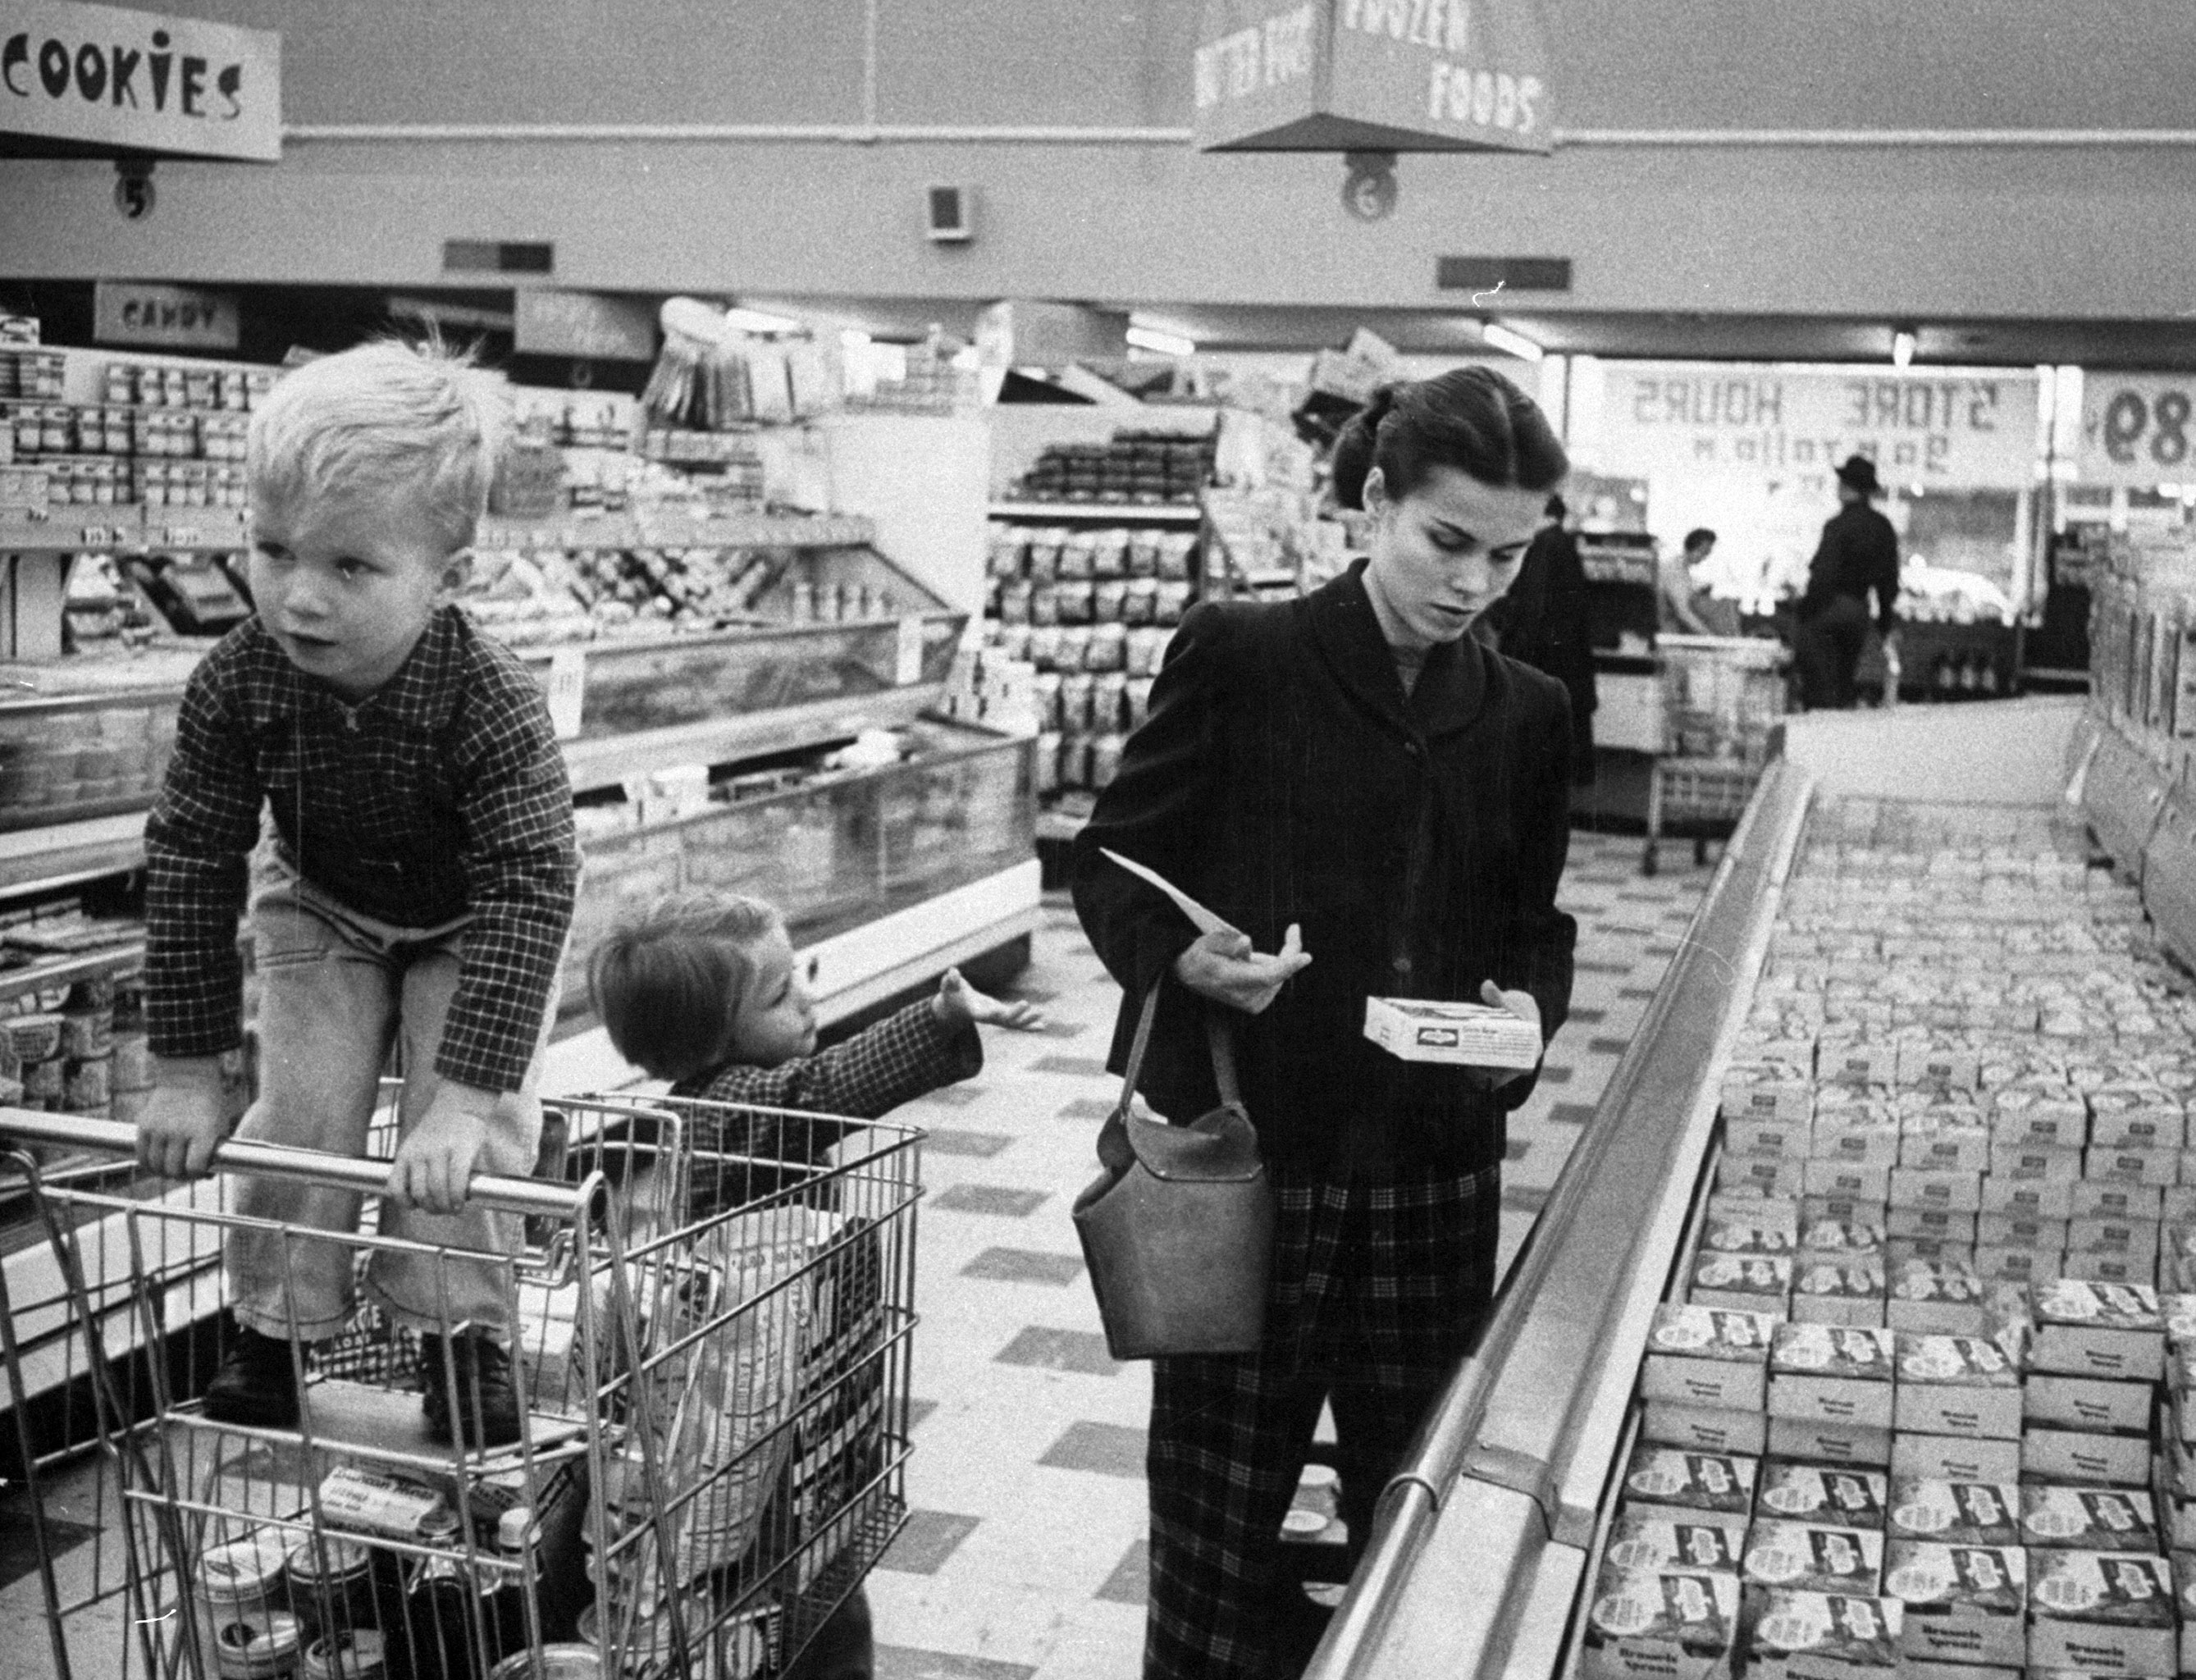 Working mother Jennie Magill shopping with her children at the super market.